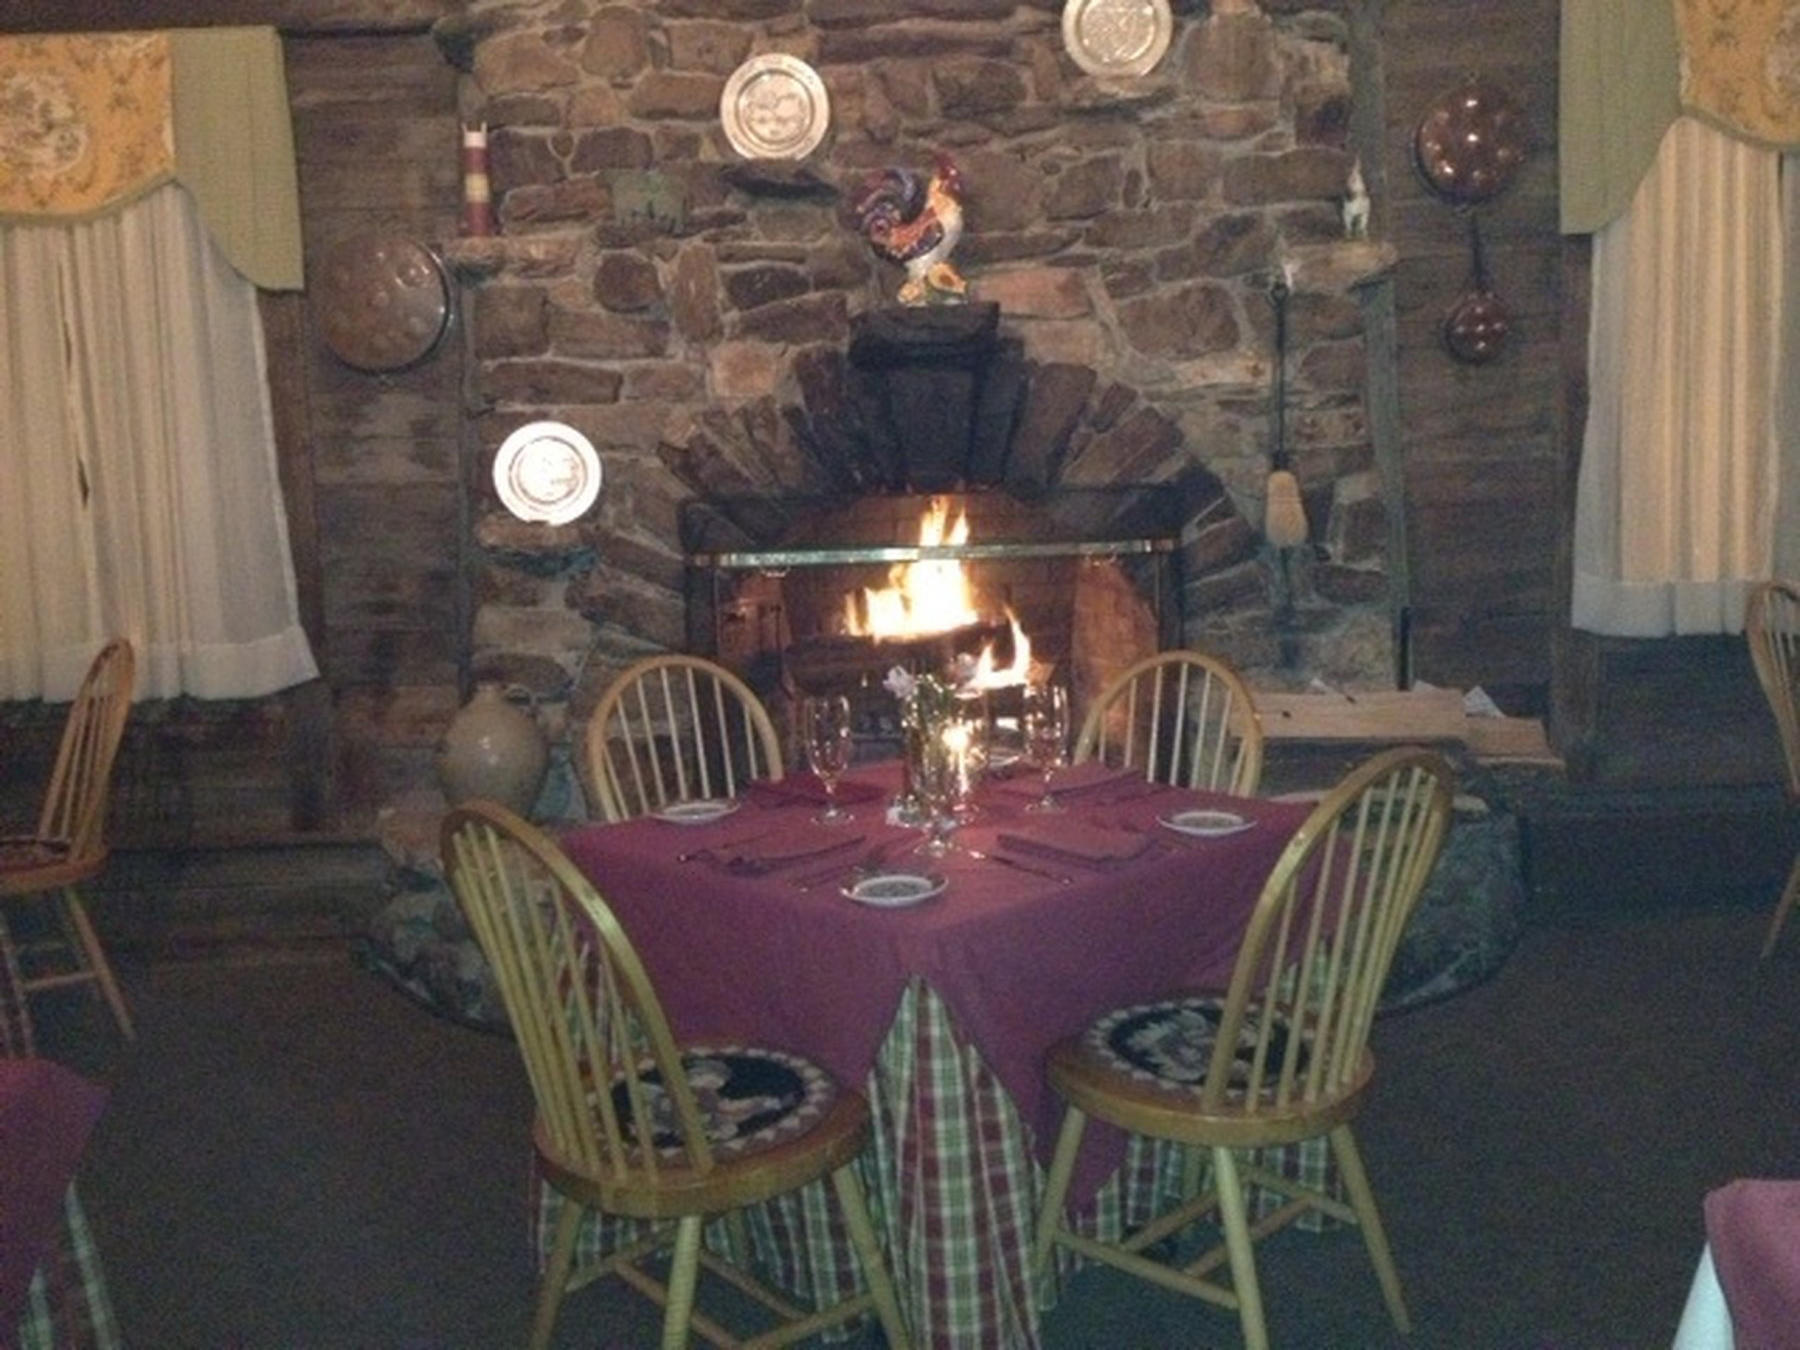 Dining Best Restaurants In Manchester Vt The Manchester View